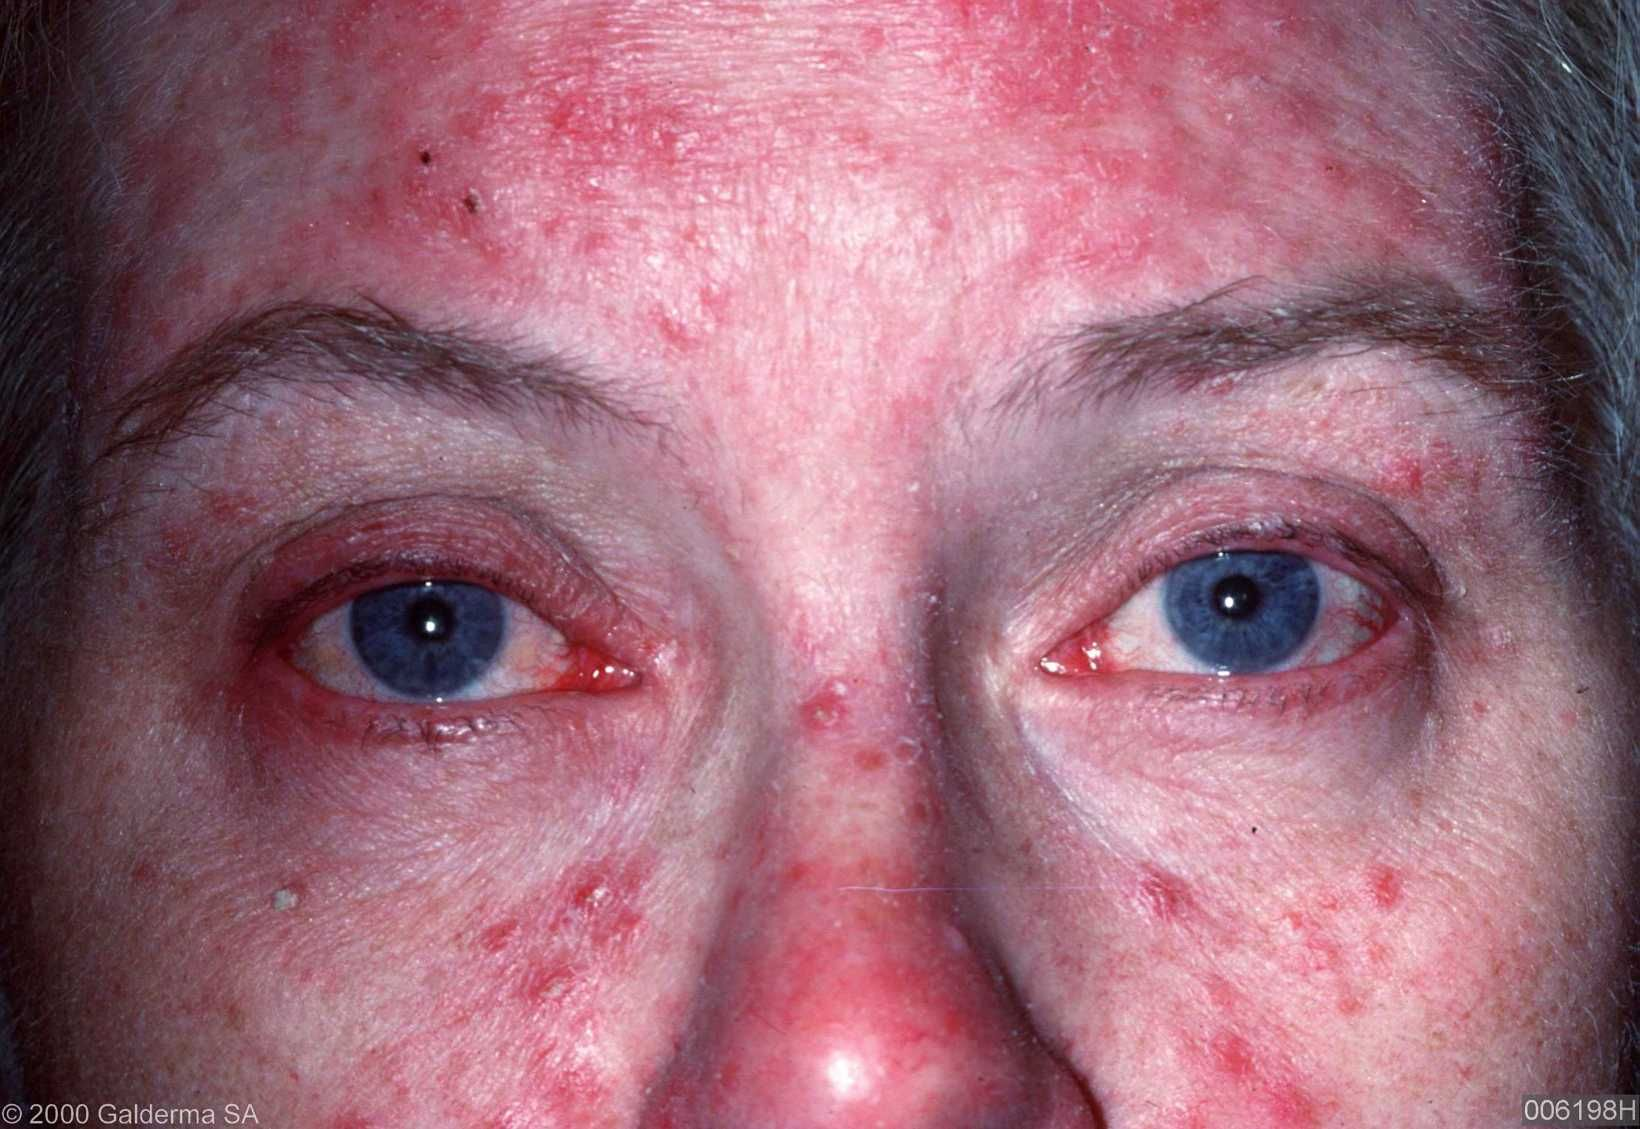 Ocular Rosacea Results In Dry Burning Gritty Eyes And Eyelids And Can Lead To Serious Eye Complic Ocular Rosacea Rosacea Skin Care Natural Rosacea Treatment